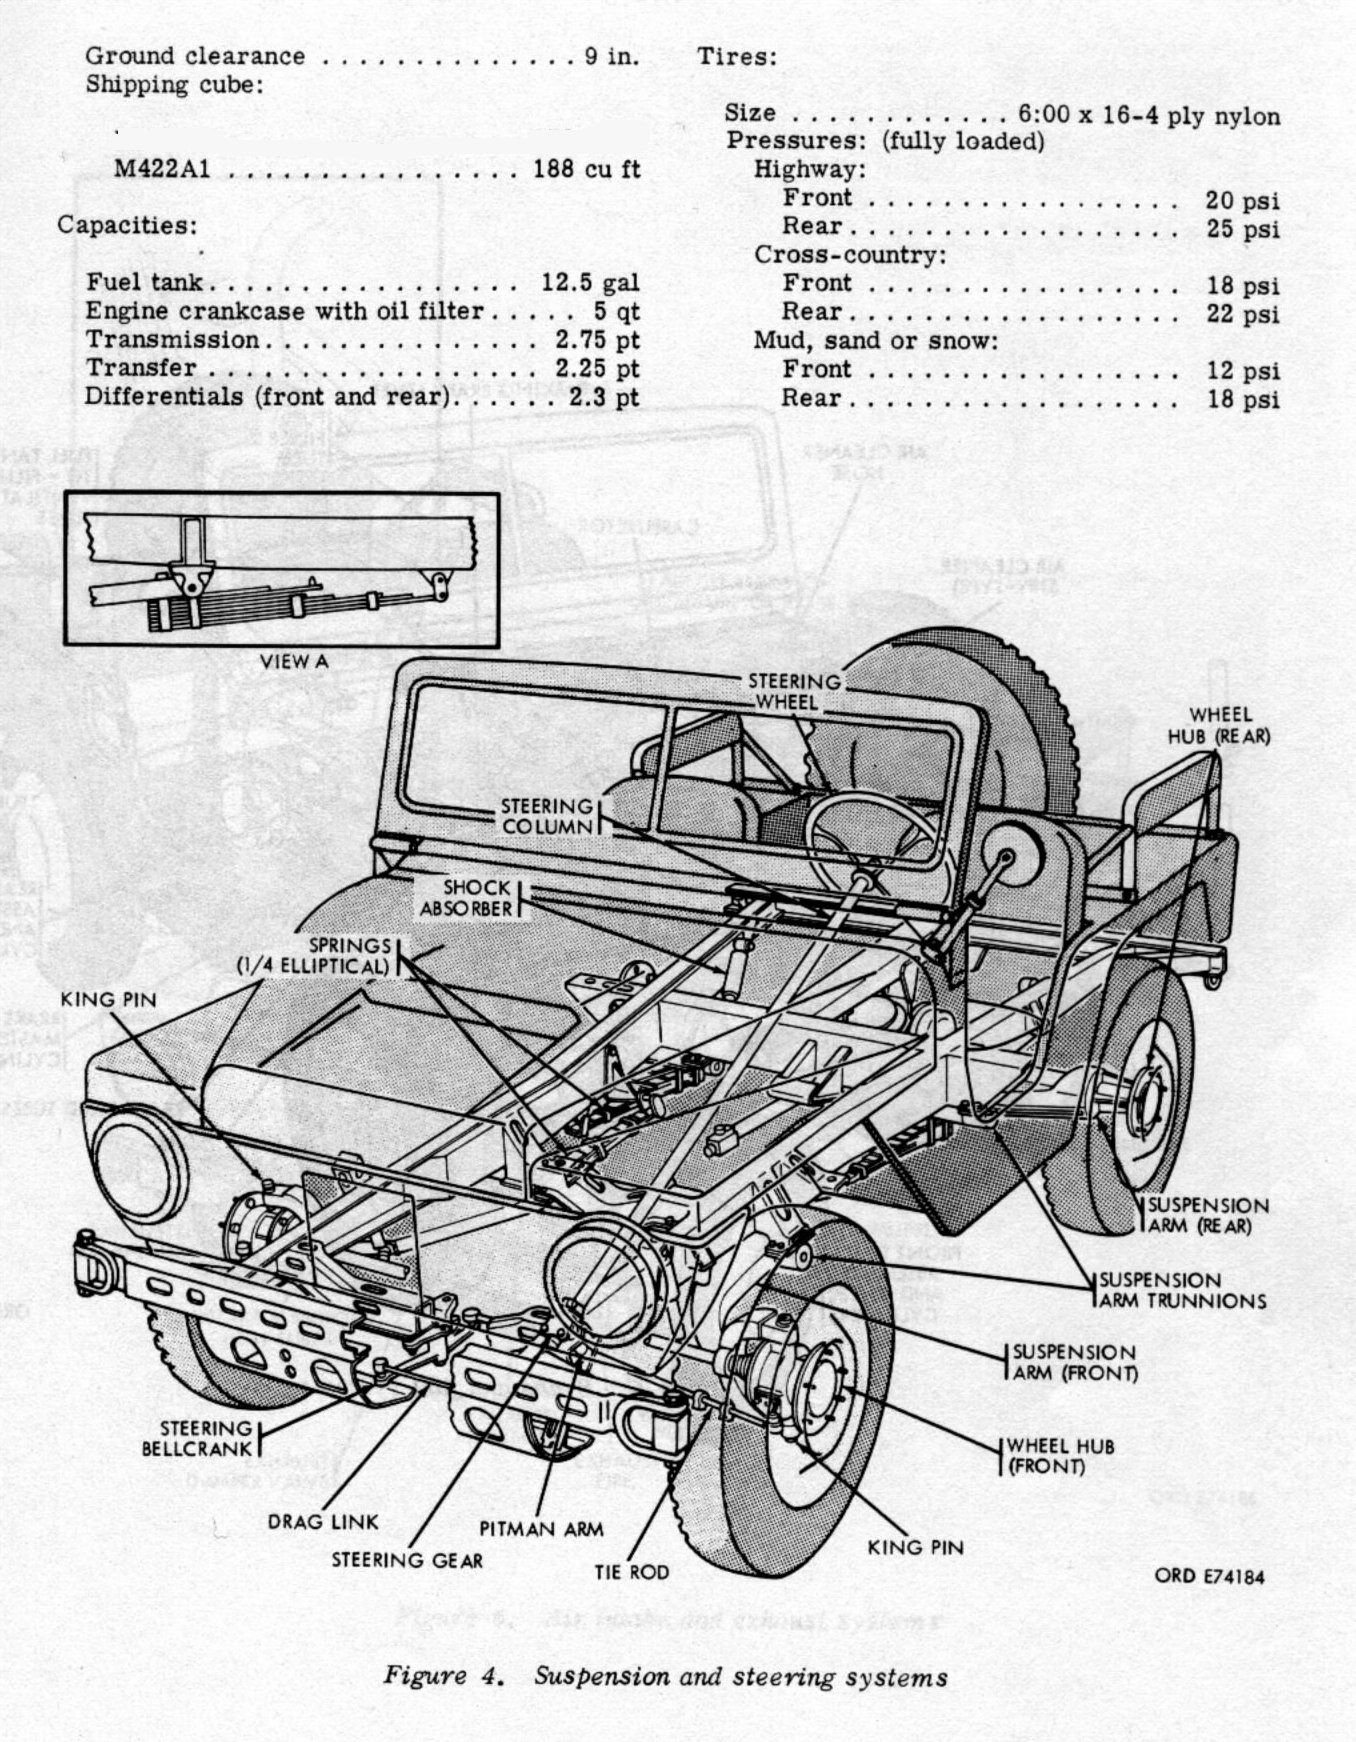 m422 mighty mite page jeep stuff pinterest jeep and cart Chevy Crew Cab Trucks Pinterest m422 mighty mite page